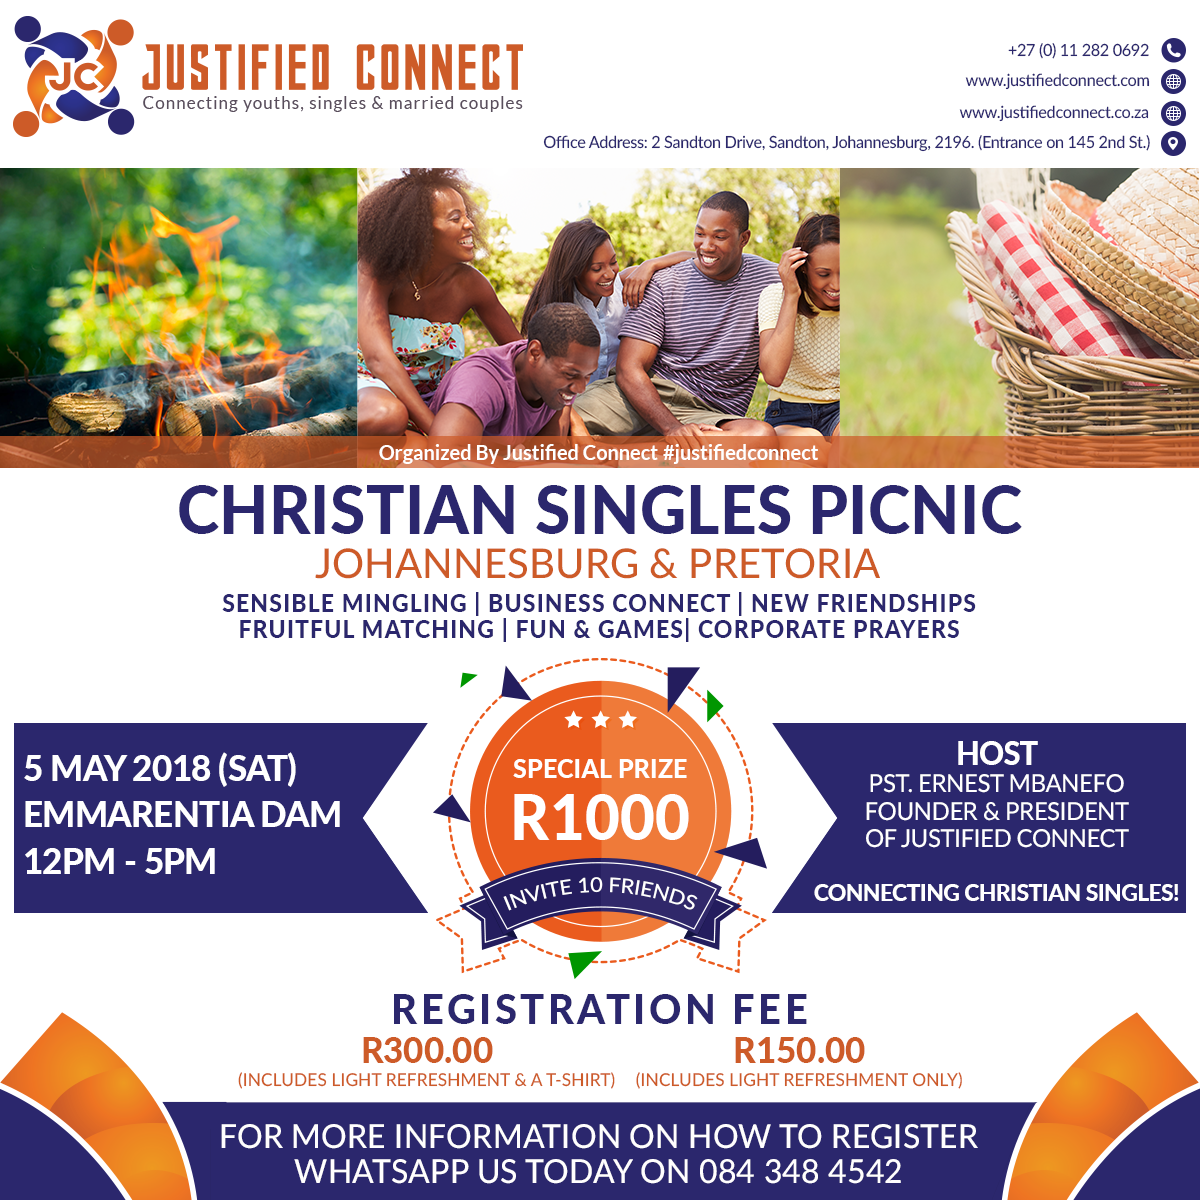 Justified Connect - Christian Singles Picnic - Emmarentia Dam 3